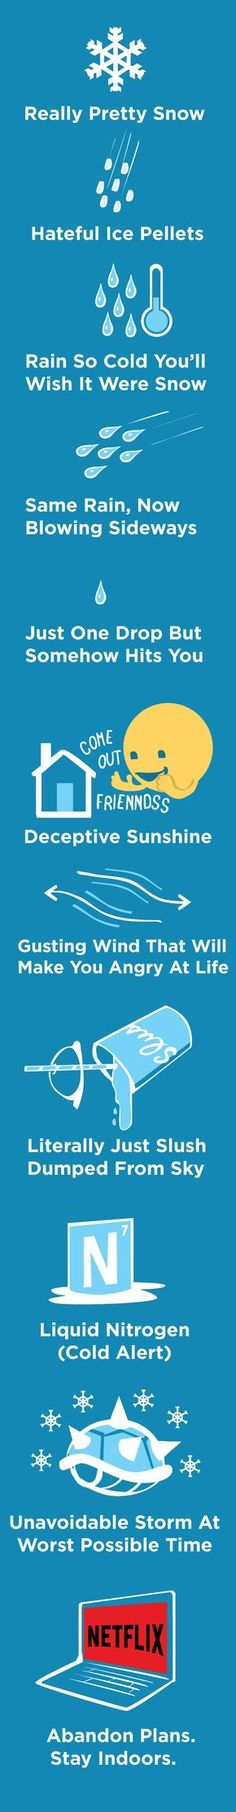 79 Best Funny Weather Memes Images On Pinterest Jokes Funny Memes